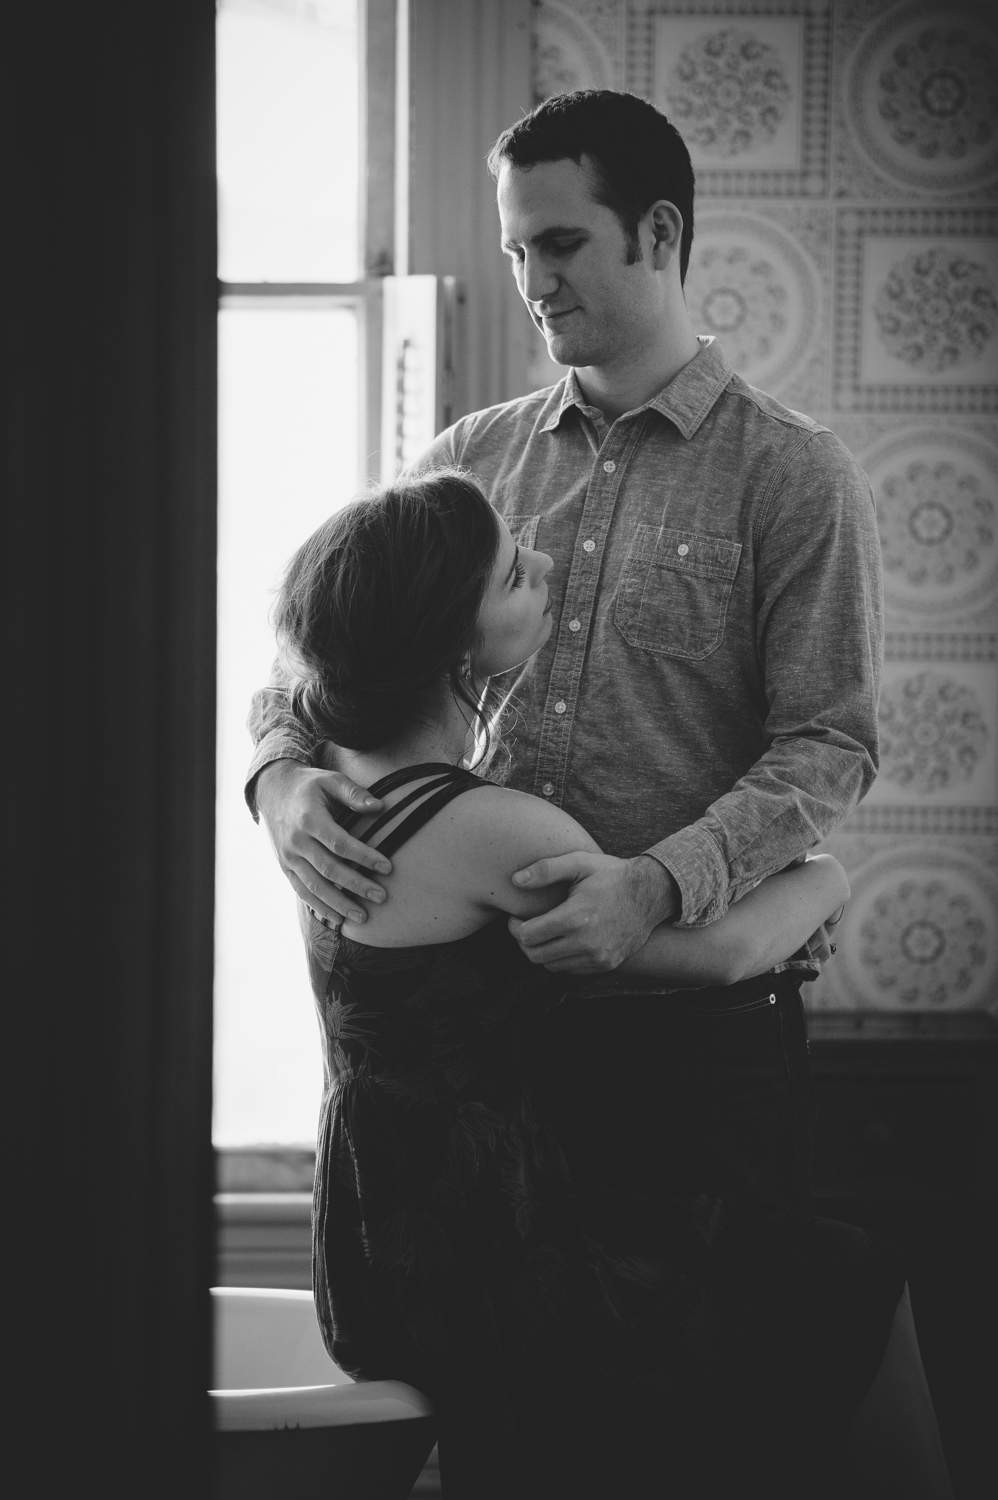 BARR_MANSION_ENGAGEMENT_SHOOT_BY_MATTHEW_MOORE_PHOTOGRAPHY_00041-2.jpg